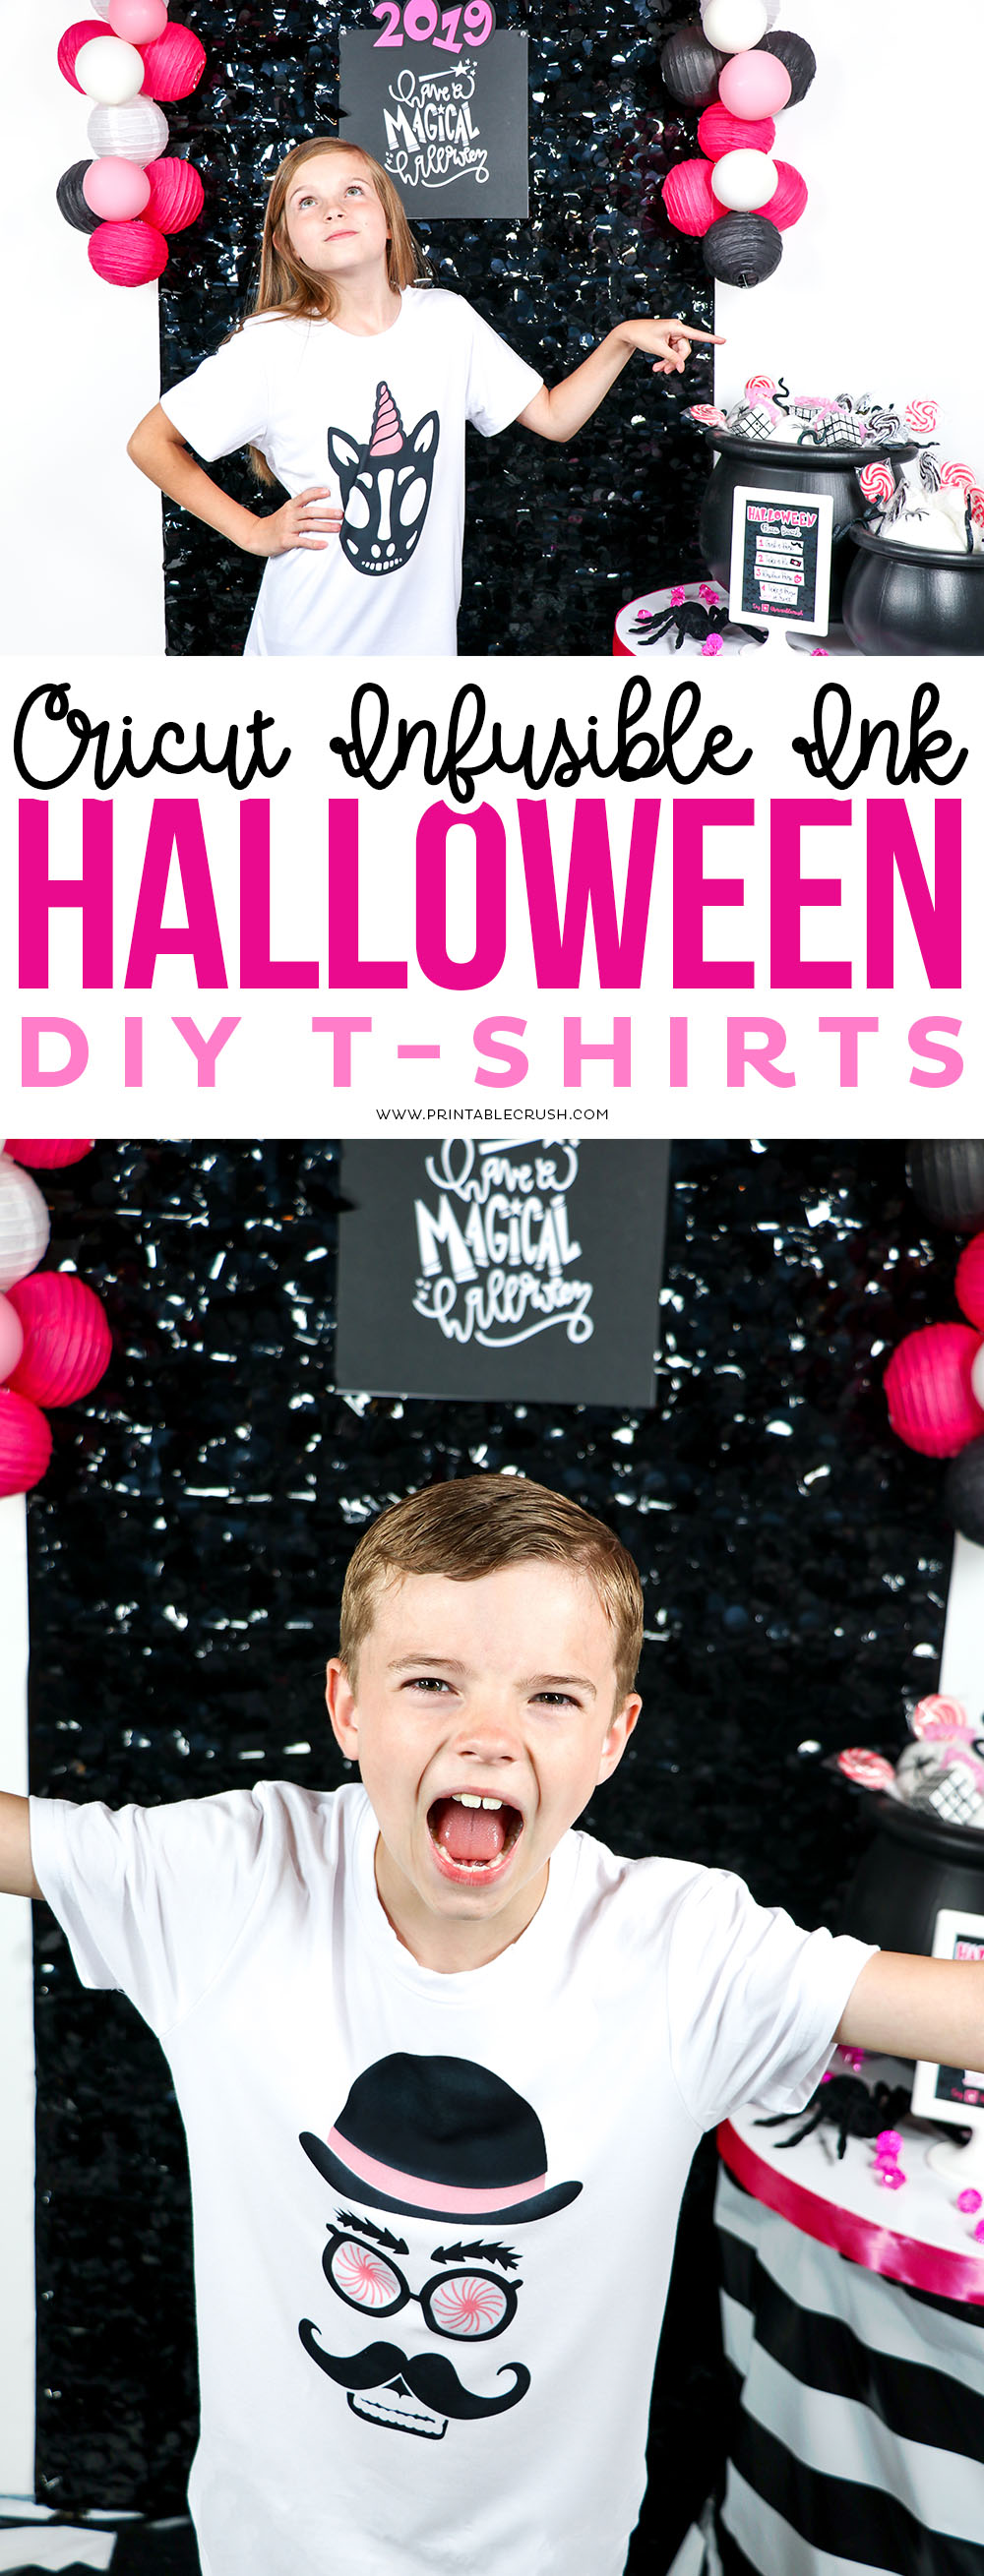 Glam Pink and Black Halloween DIY T-shirt Designs